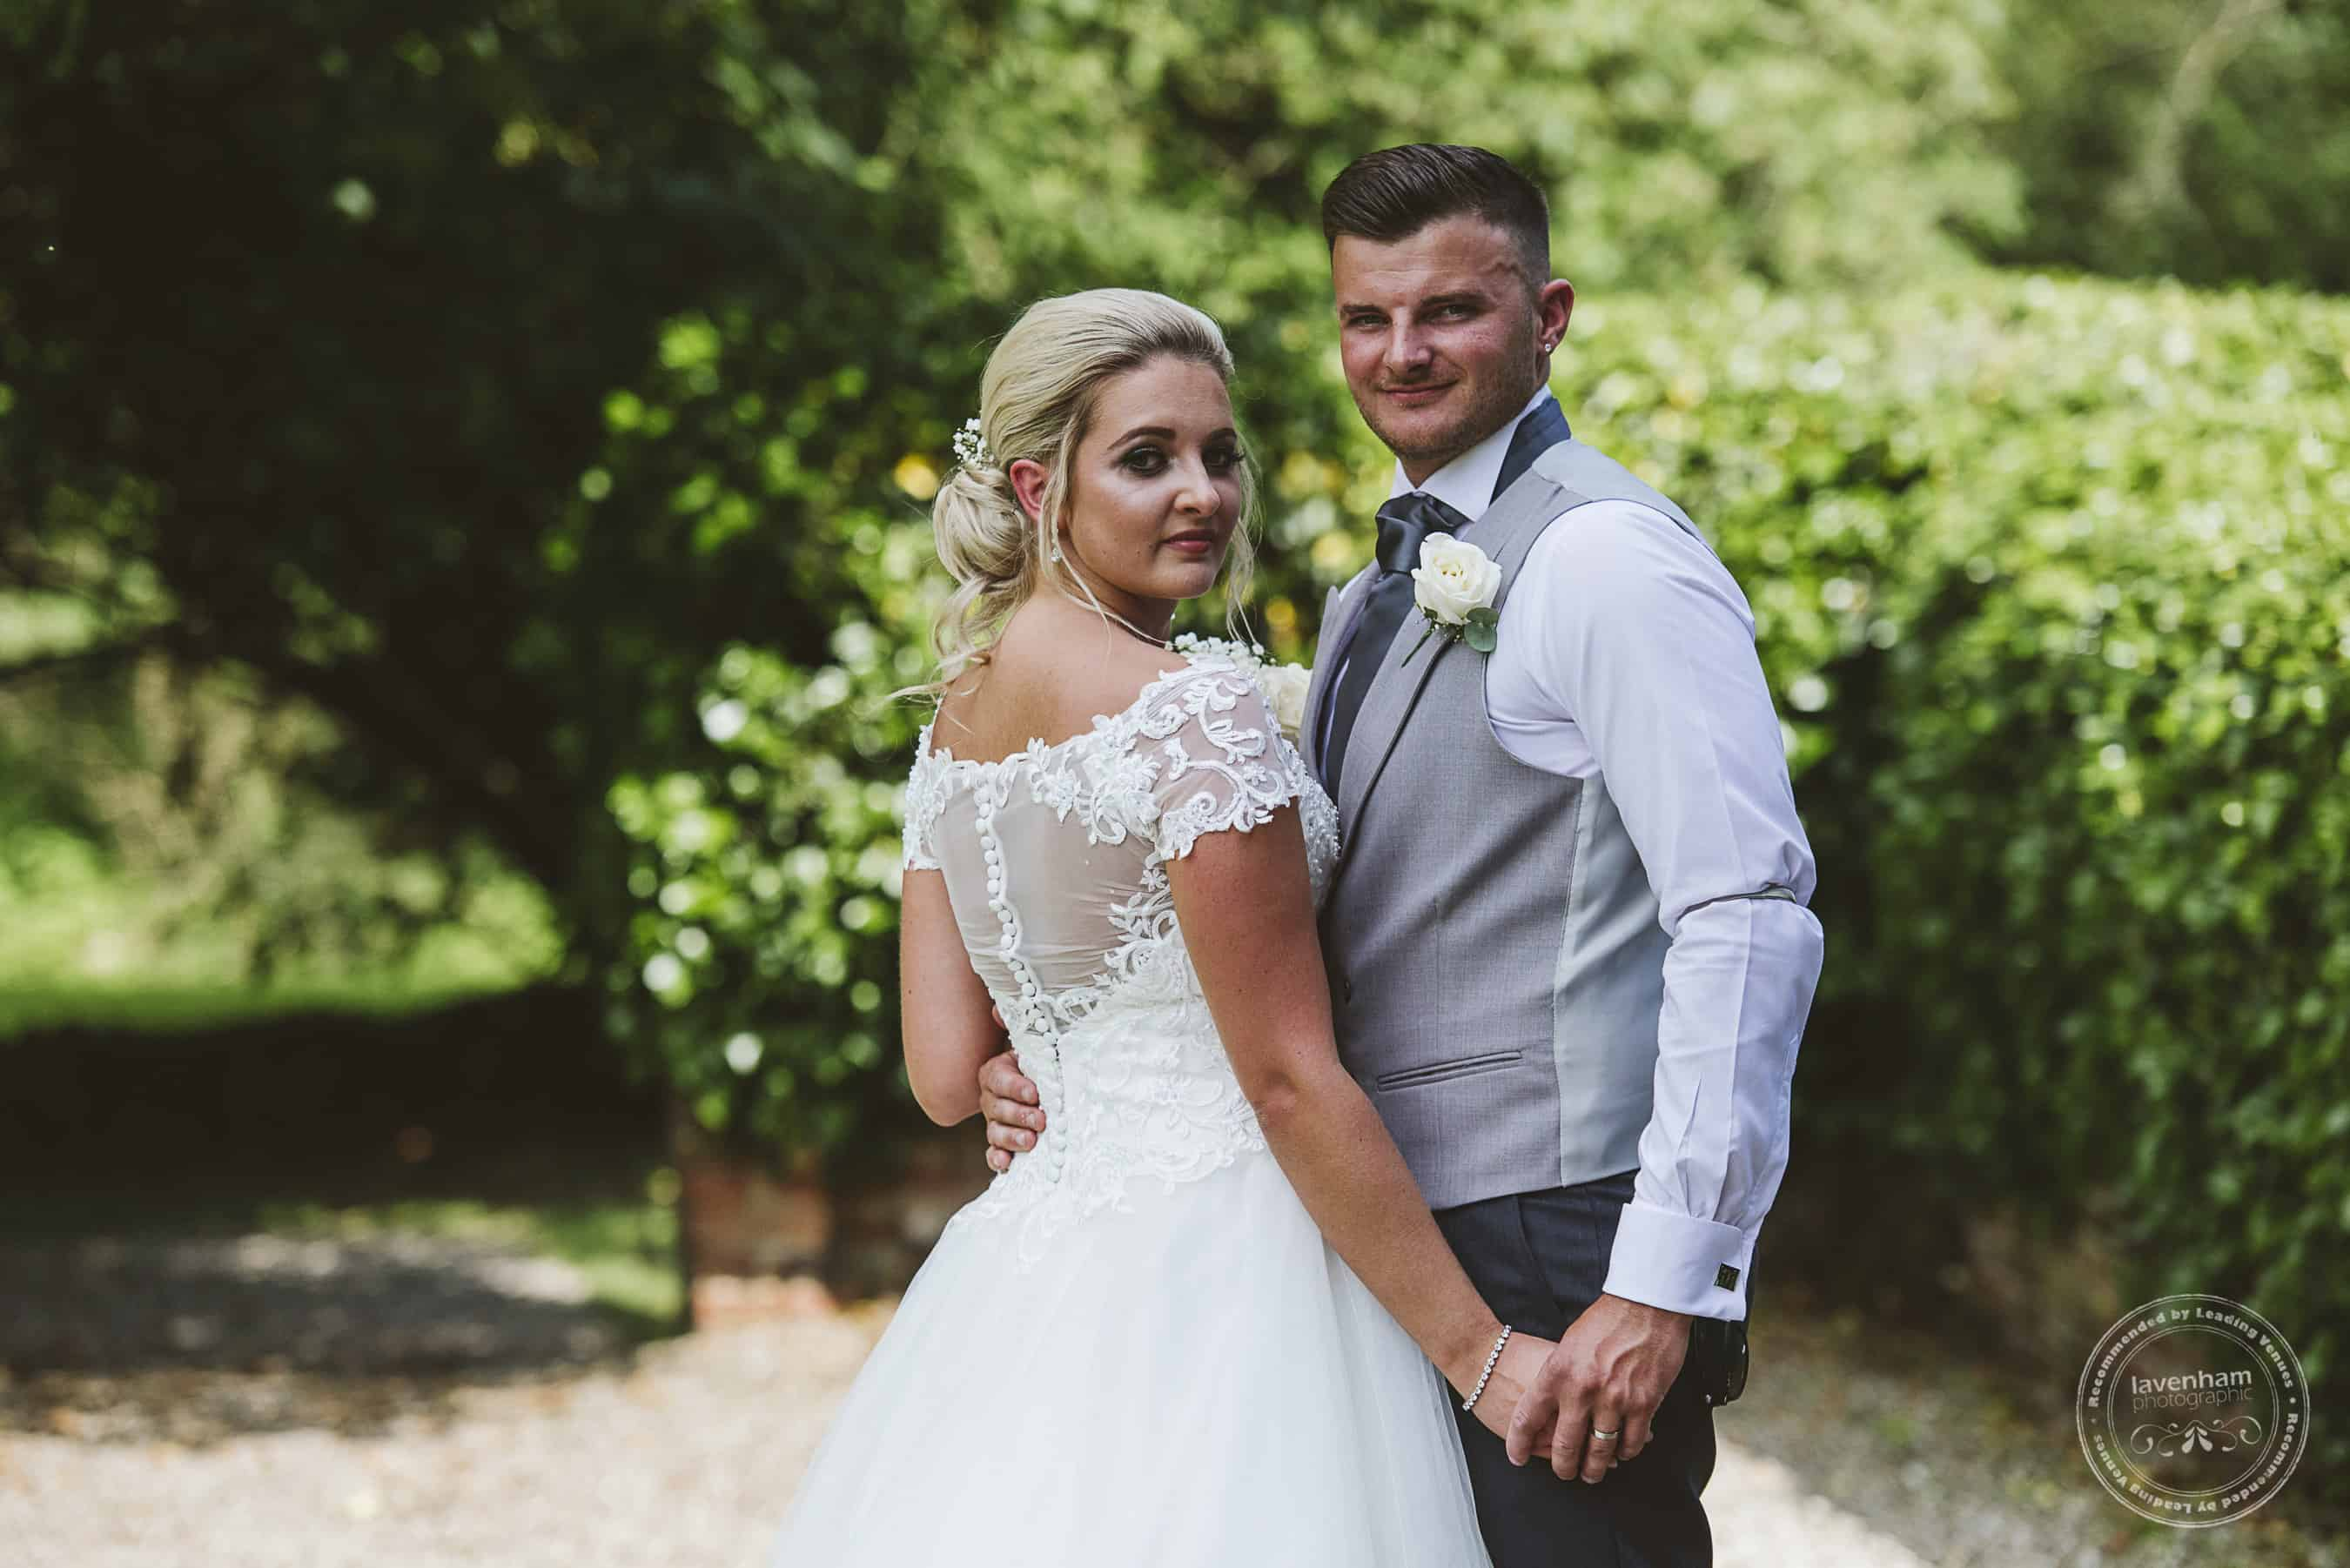 030618 Leez Priory Wedding Photography Lavenham Photographic 063